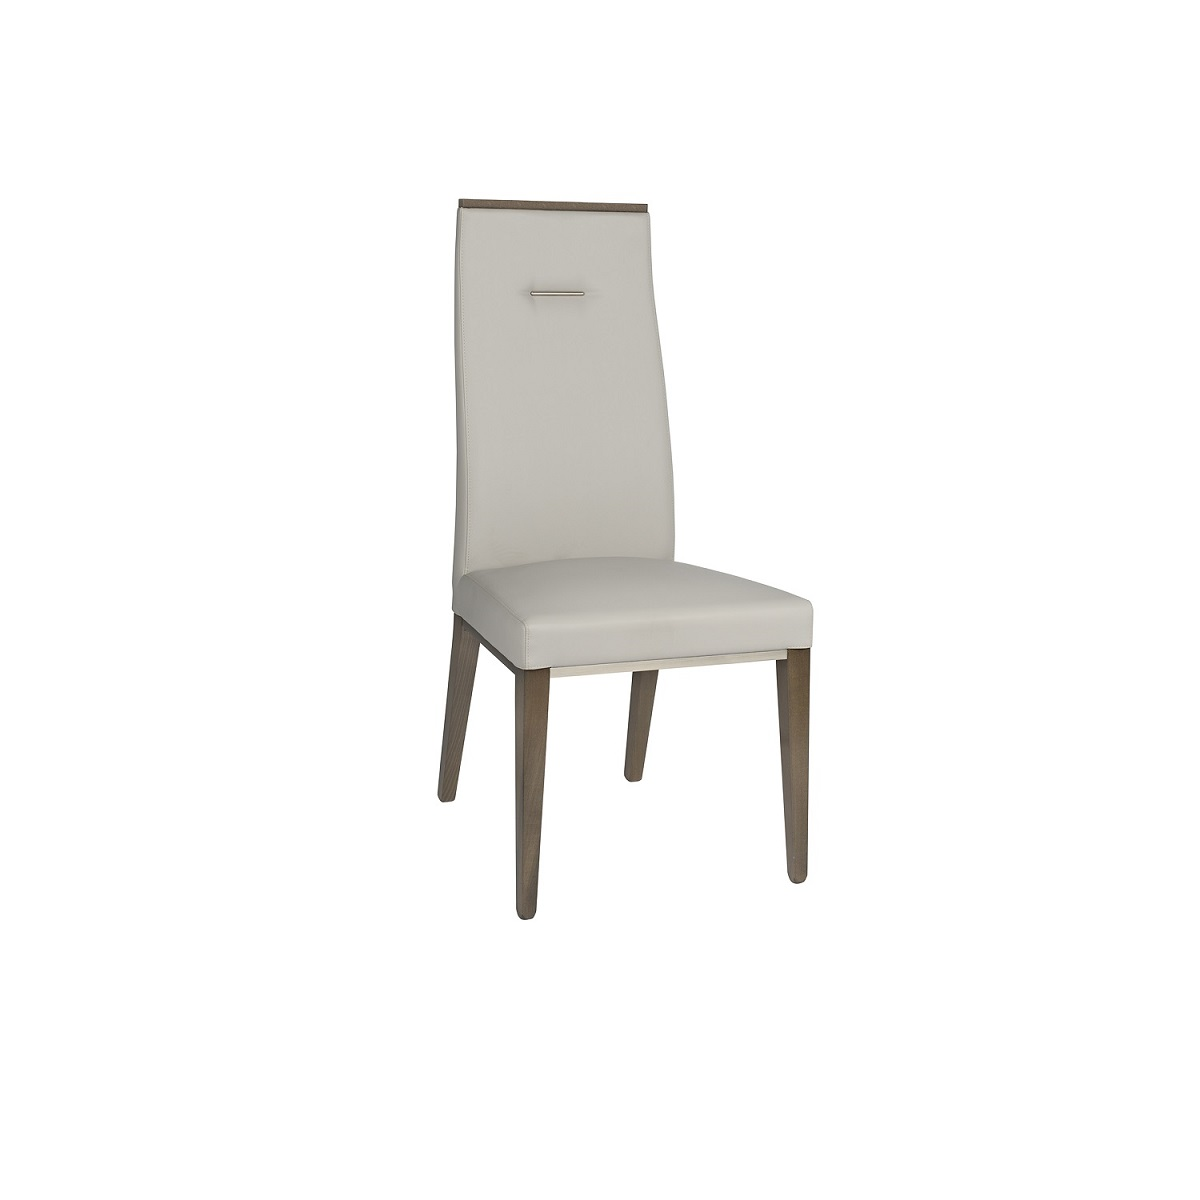 Bella Disegno Dining Chair